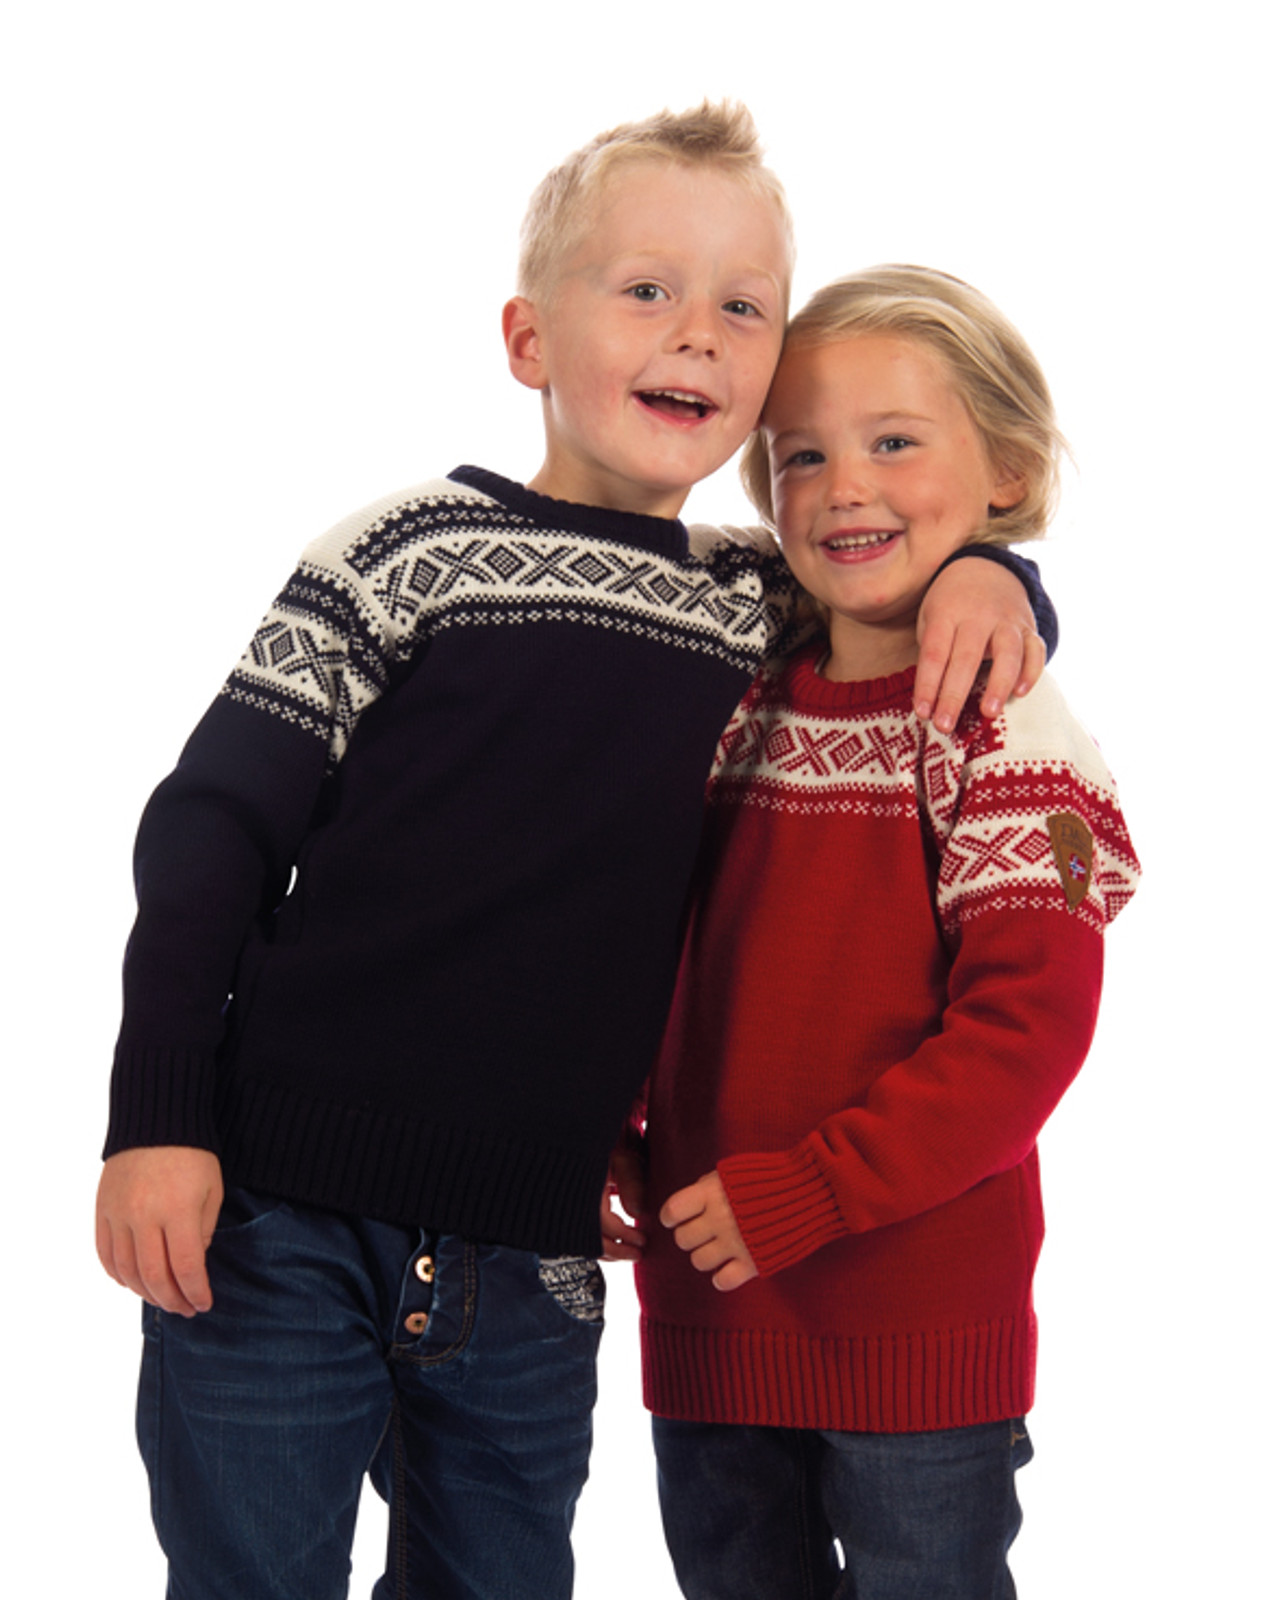 Children showing the different colors of the Dale of Norway Cortina kids sweater. The colors are Raspberry/Off White, 92991-B, and Navy/Off White, 92991-C